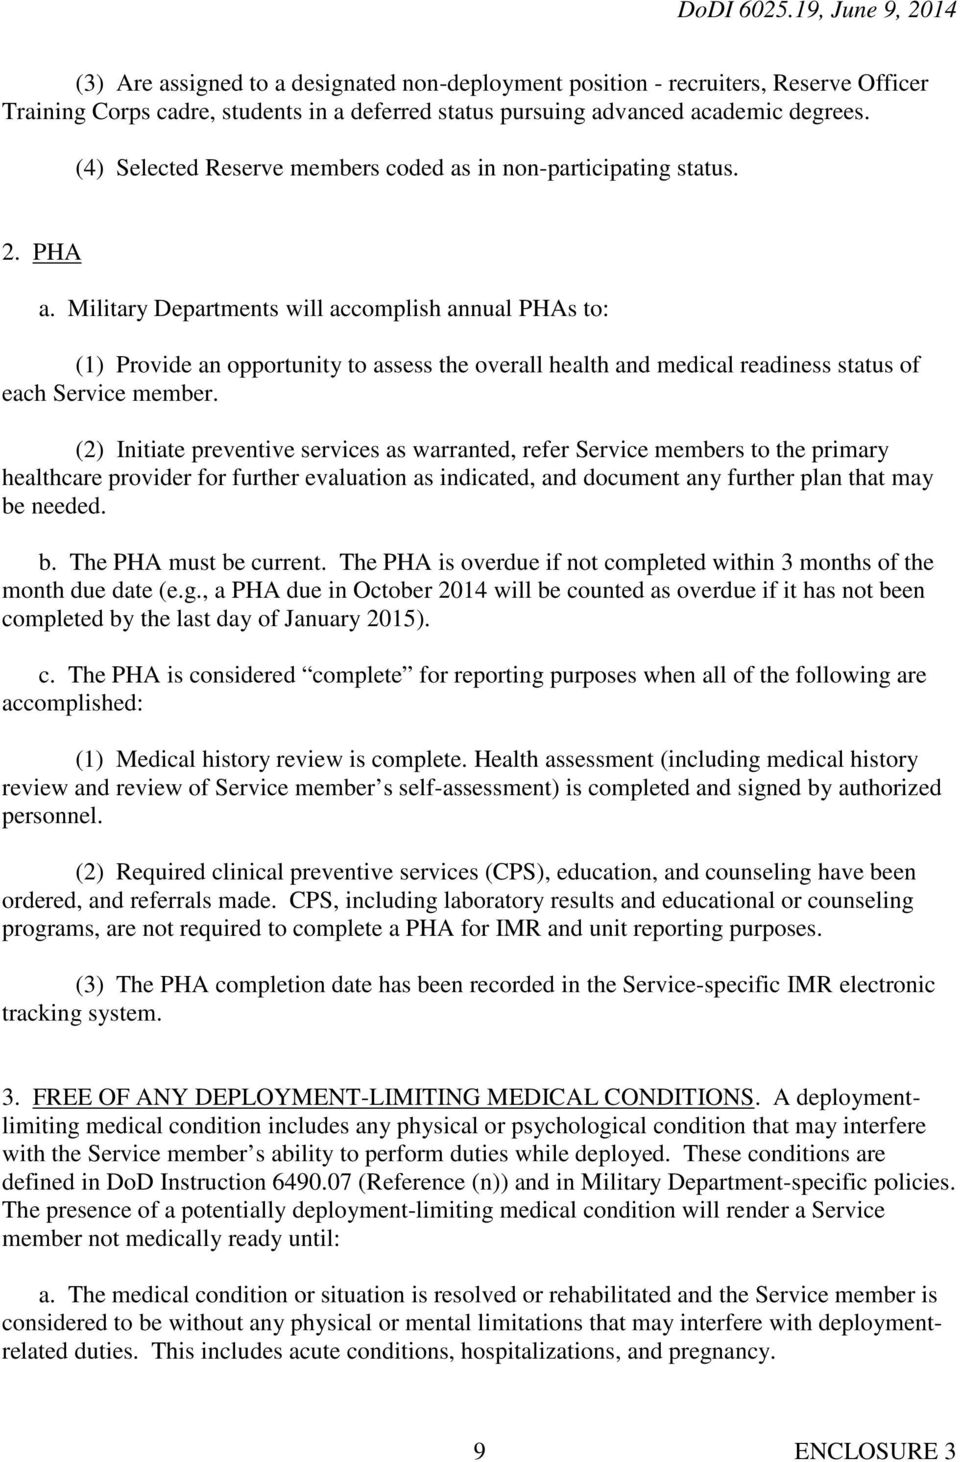 Military Departments will accomplish annual PHAs to: (1) Provide an opportunity to assess the overall health and medical readiness status of each Service member.